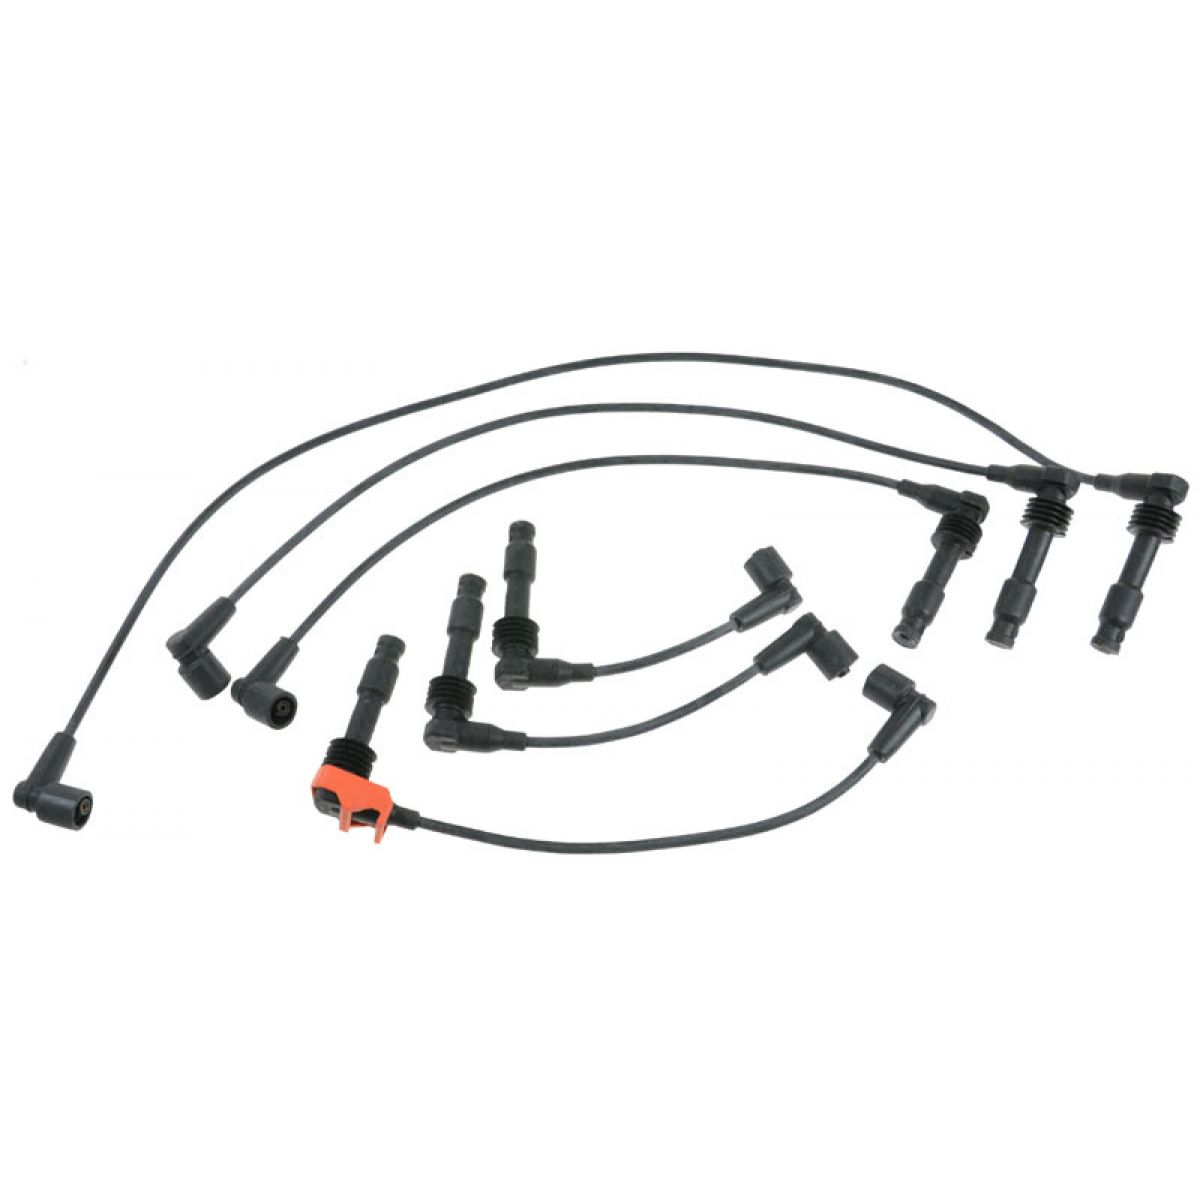 Spark Plug Ignition Wires Set New For 97 99 Cadillac